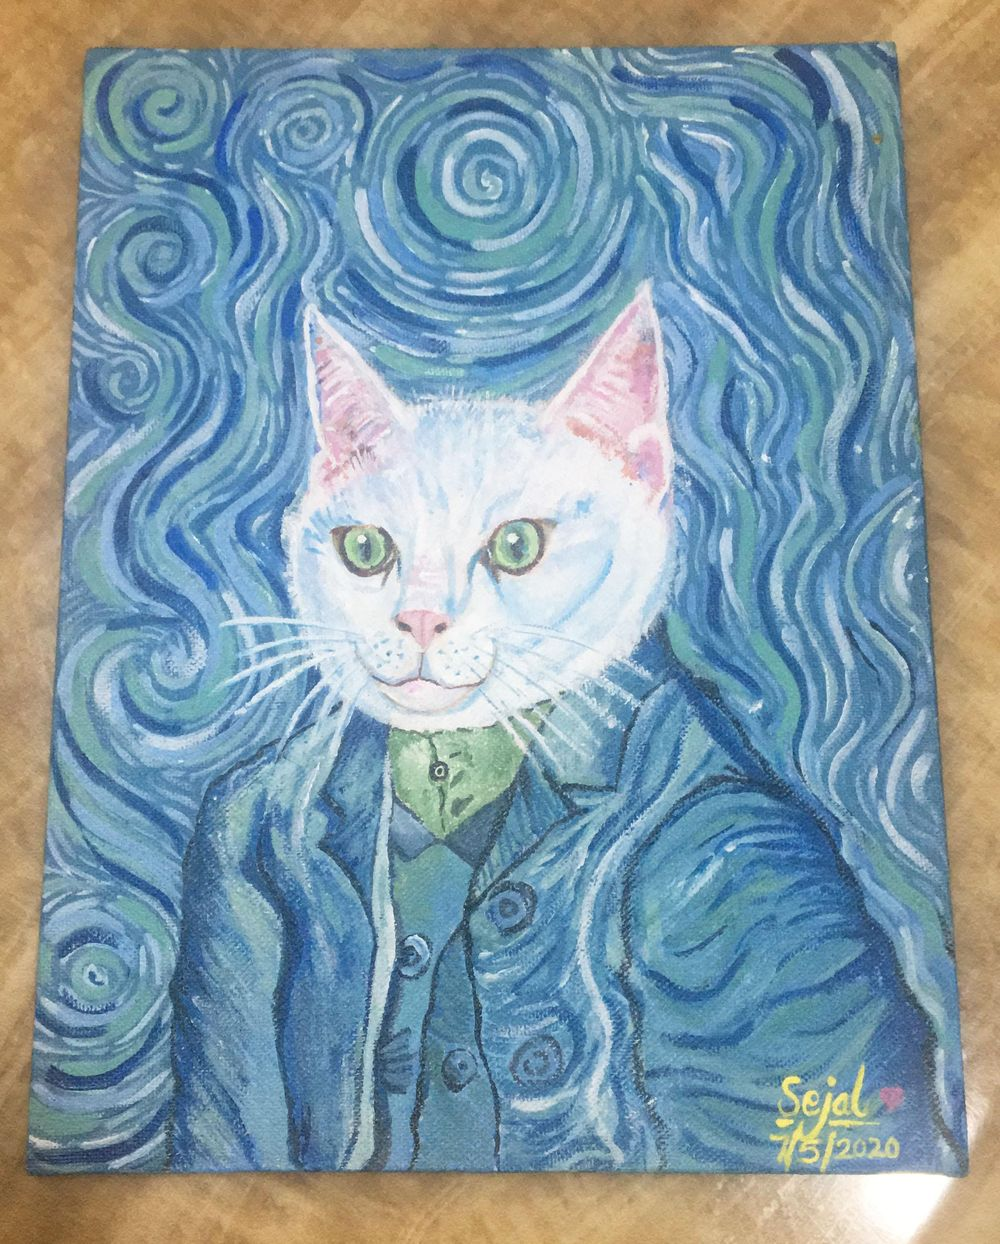 My Cat - image 2 - student project